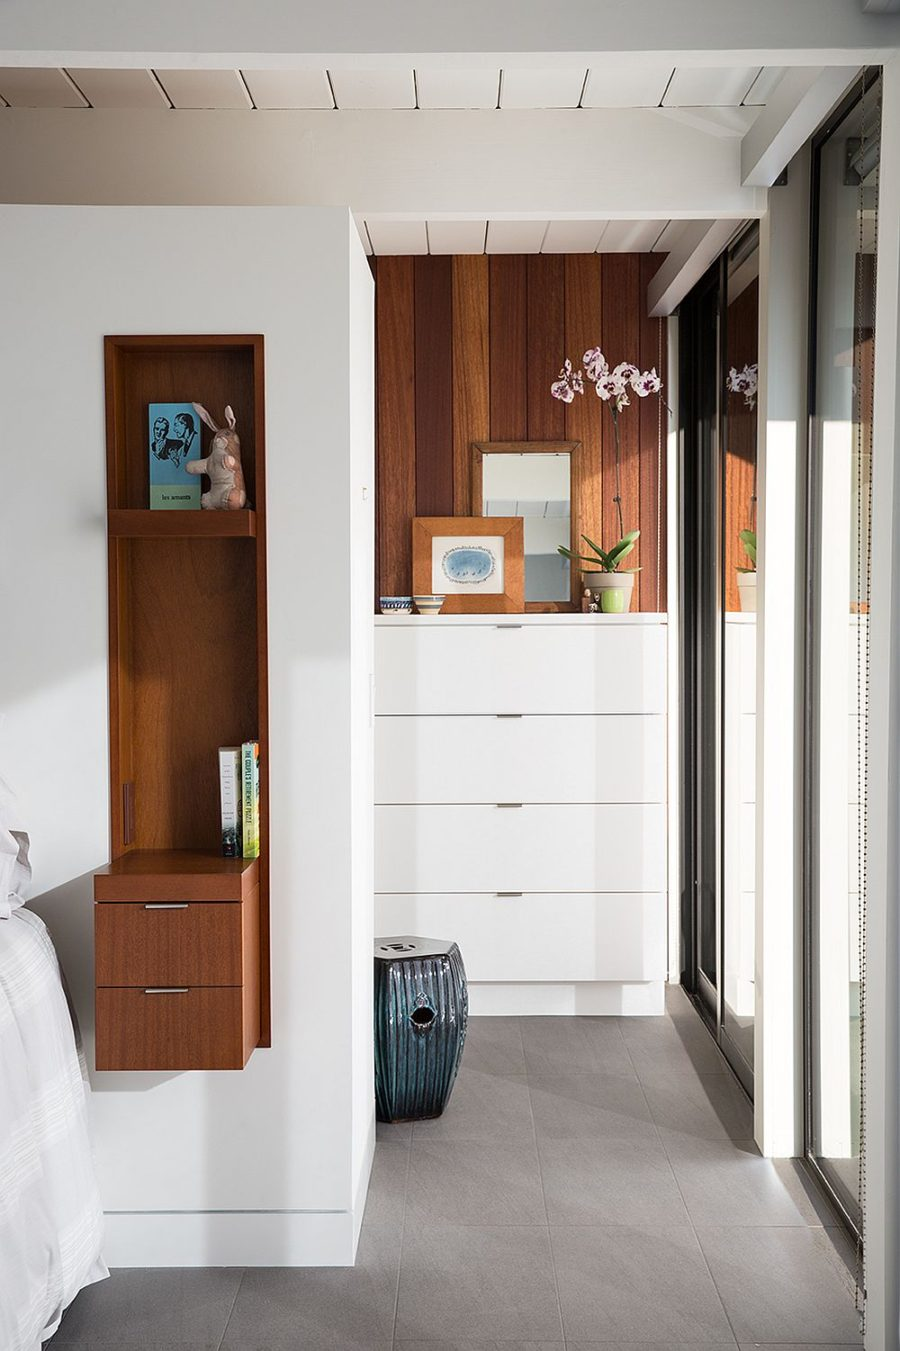 Nightstands incorporated into wall niches are a brilliant design solution for a headboard wall